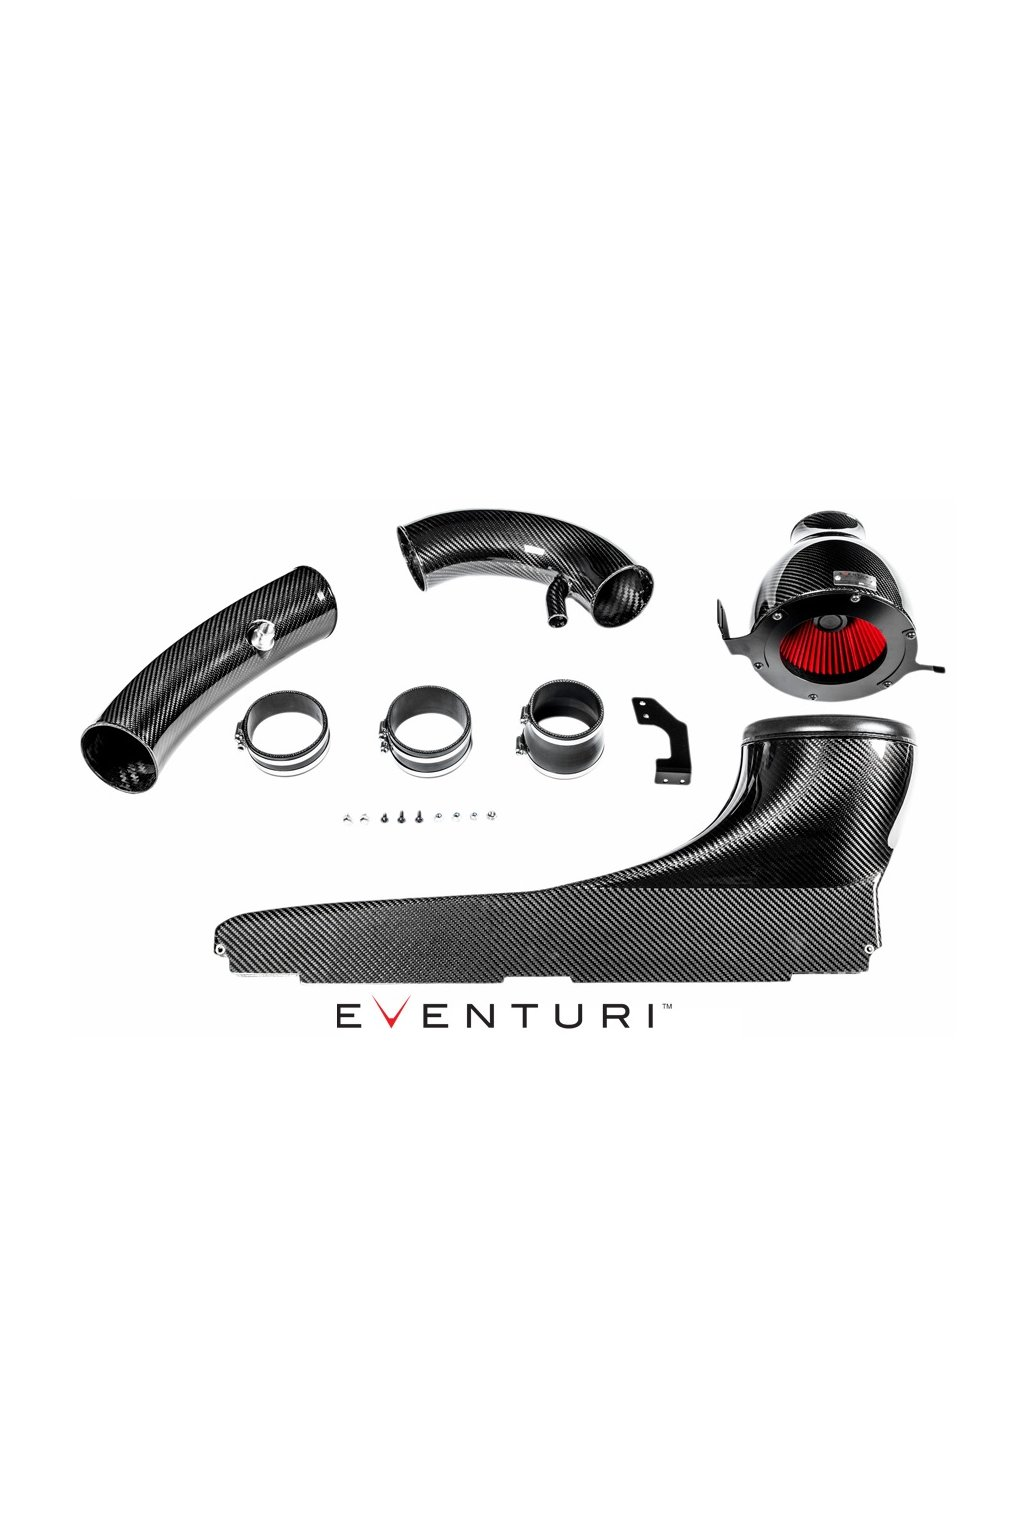 TTRS RS3 Eventuri intake components